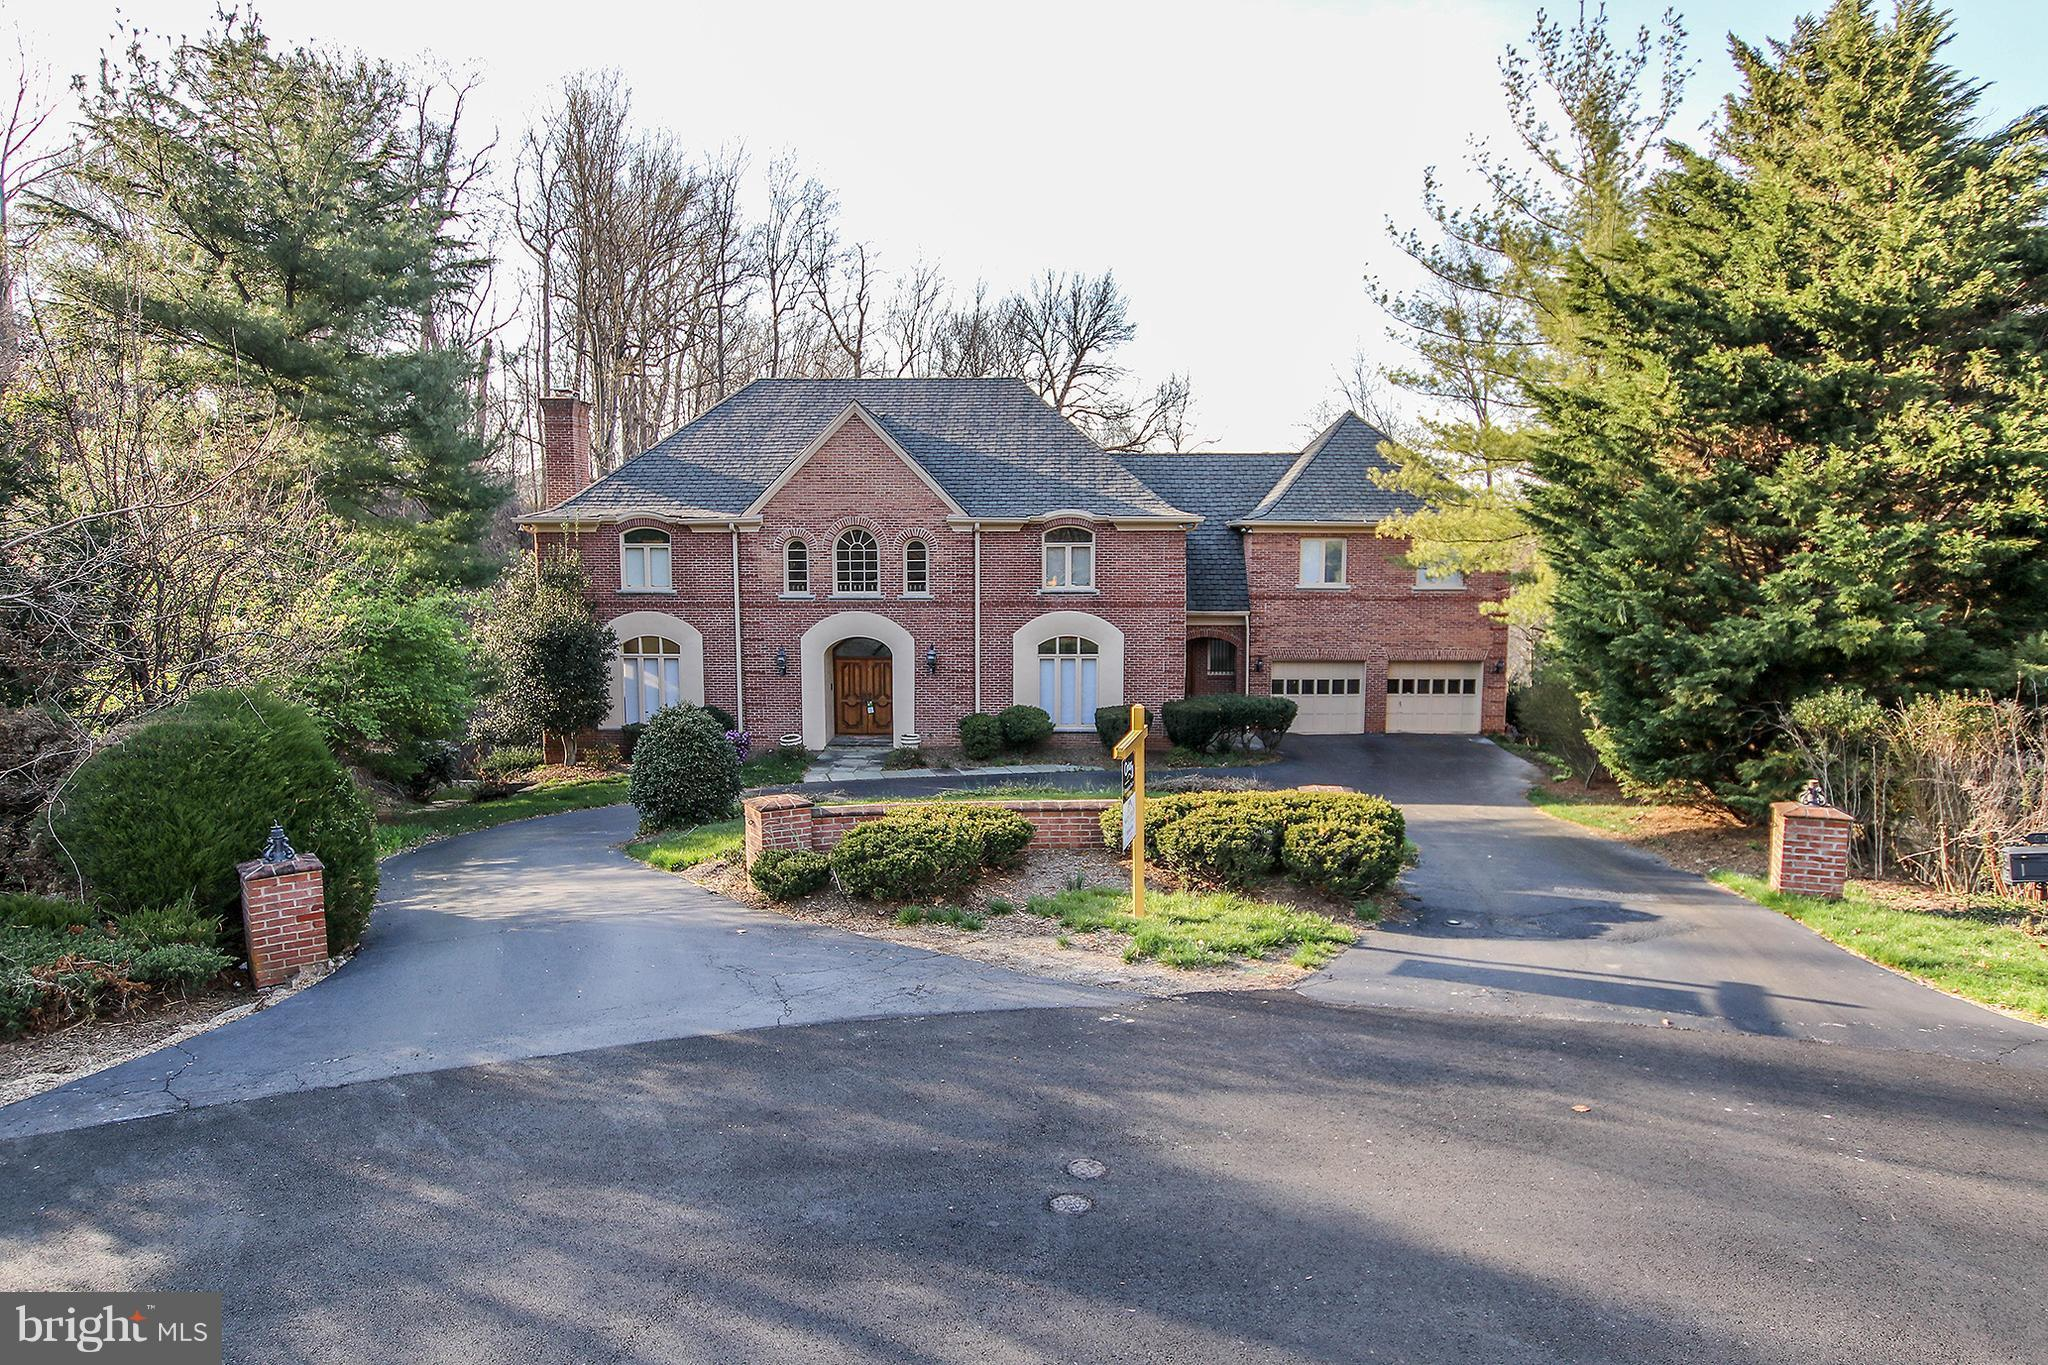 SPECTACULAR HILL-TOP ESTATE ON WOODED LOT W/ RIVER VIEWS & TRAILS TO THE POTOMAC. MAGNIFICENT 2-STORY FOYER W/ FLOATING STAIRCASE. EXQUISITE MOLDINGS.  RICHLY PANELED LIBRARY. DR W/ BUILT-INS.  GRANITE & SS APPLS IN UPDATED & SPACIOUS KIT.  HUGE OWNER'S WING W/ HIS & HER BATHS. 4 ENSUITE GUEST RMS. EXPANSIVE FULLY FIN WALK OUT LOWER LVL.  JUST MINS TO DC! ALSO AVAIL FOR RENT SHORT TERM BASIS.